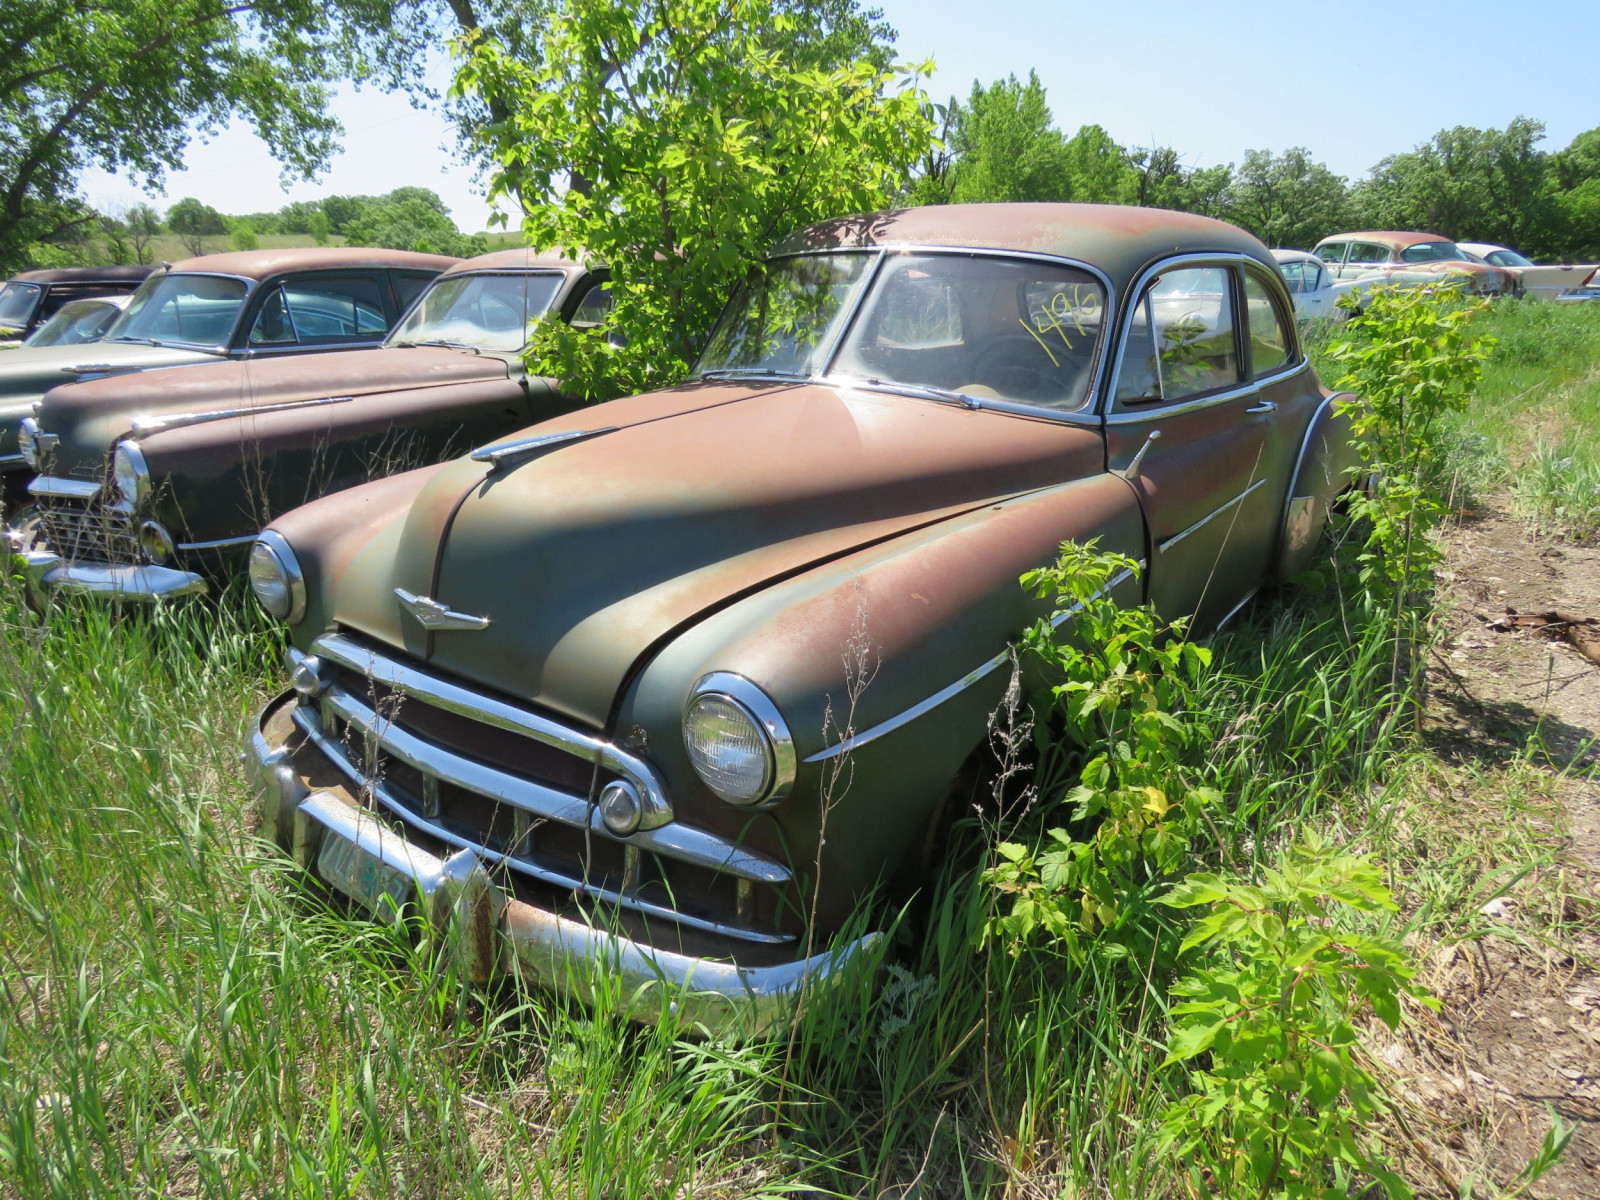 1950 Chevrolet Deluxe 2dr Sedan for project or parts 21GK-121077 - Image 1